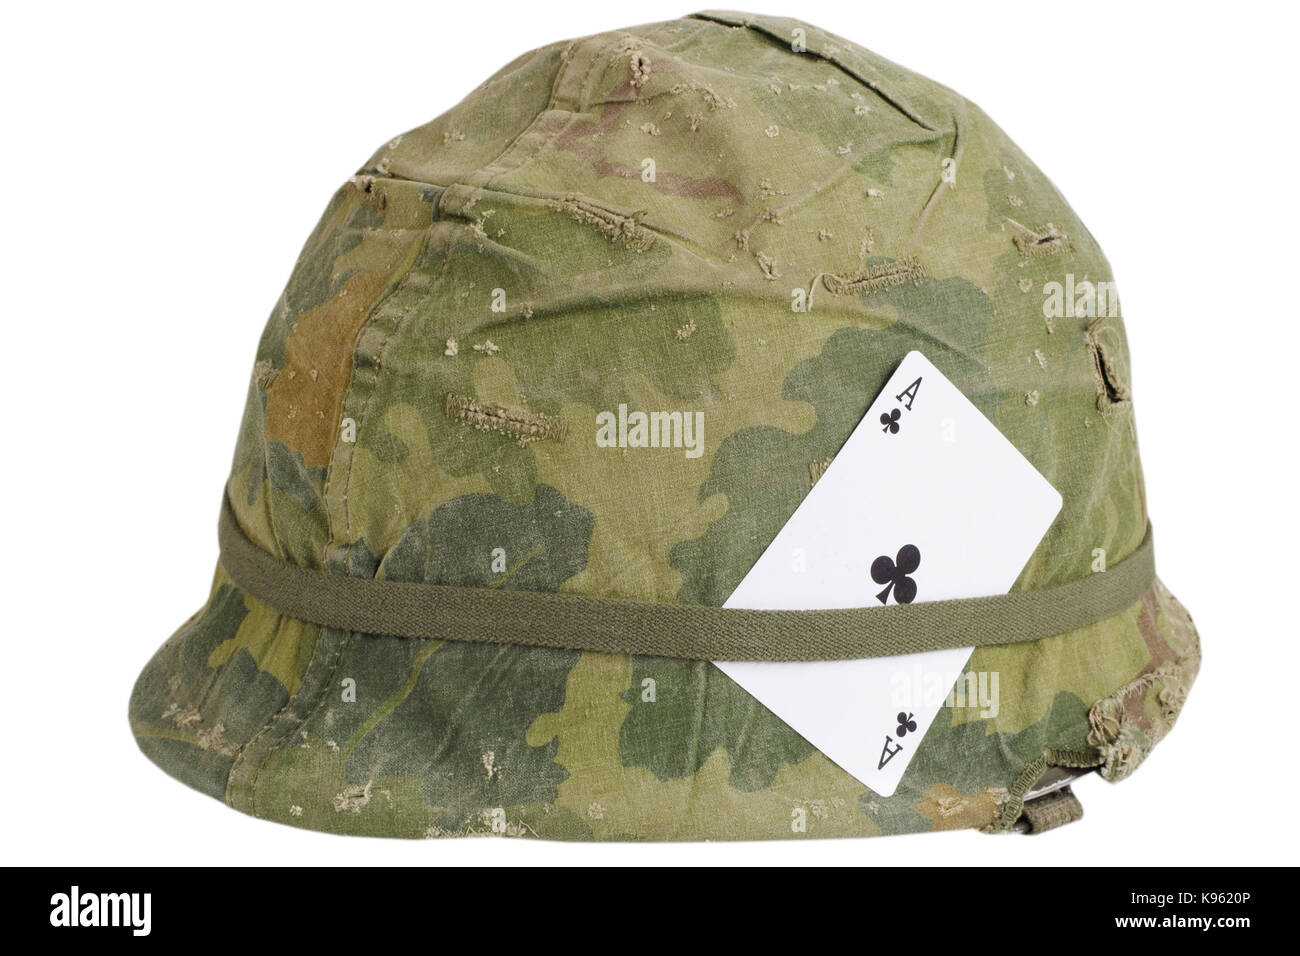 Us Army Helmet Vietnam War Period With Amulet Ace Of Clubs Playing Stock Photo Alamy